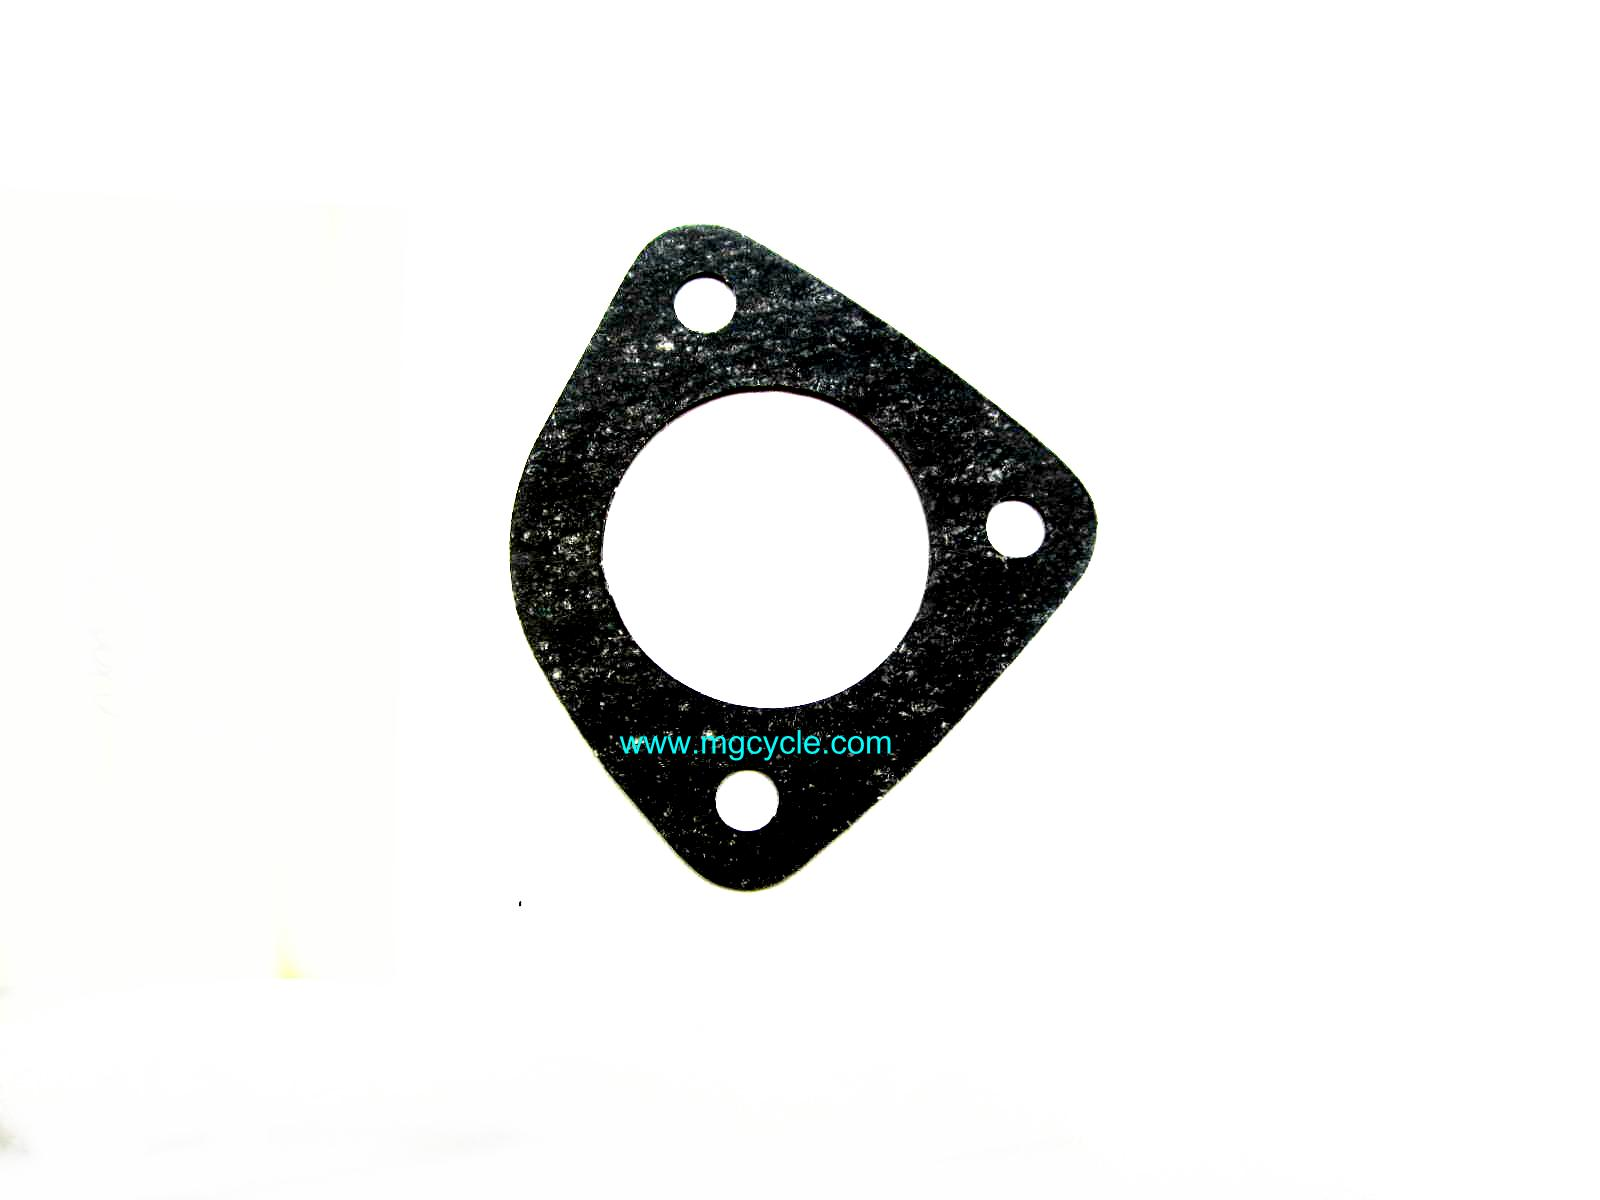 intake manifold gasket, Cal2-SP2-LM1-3, pre'93 Cal3